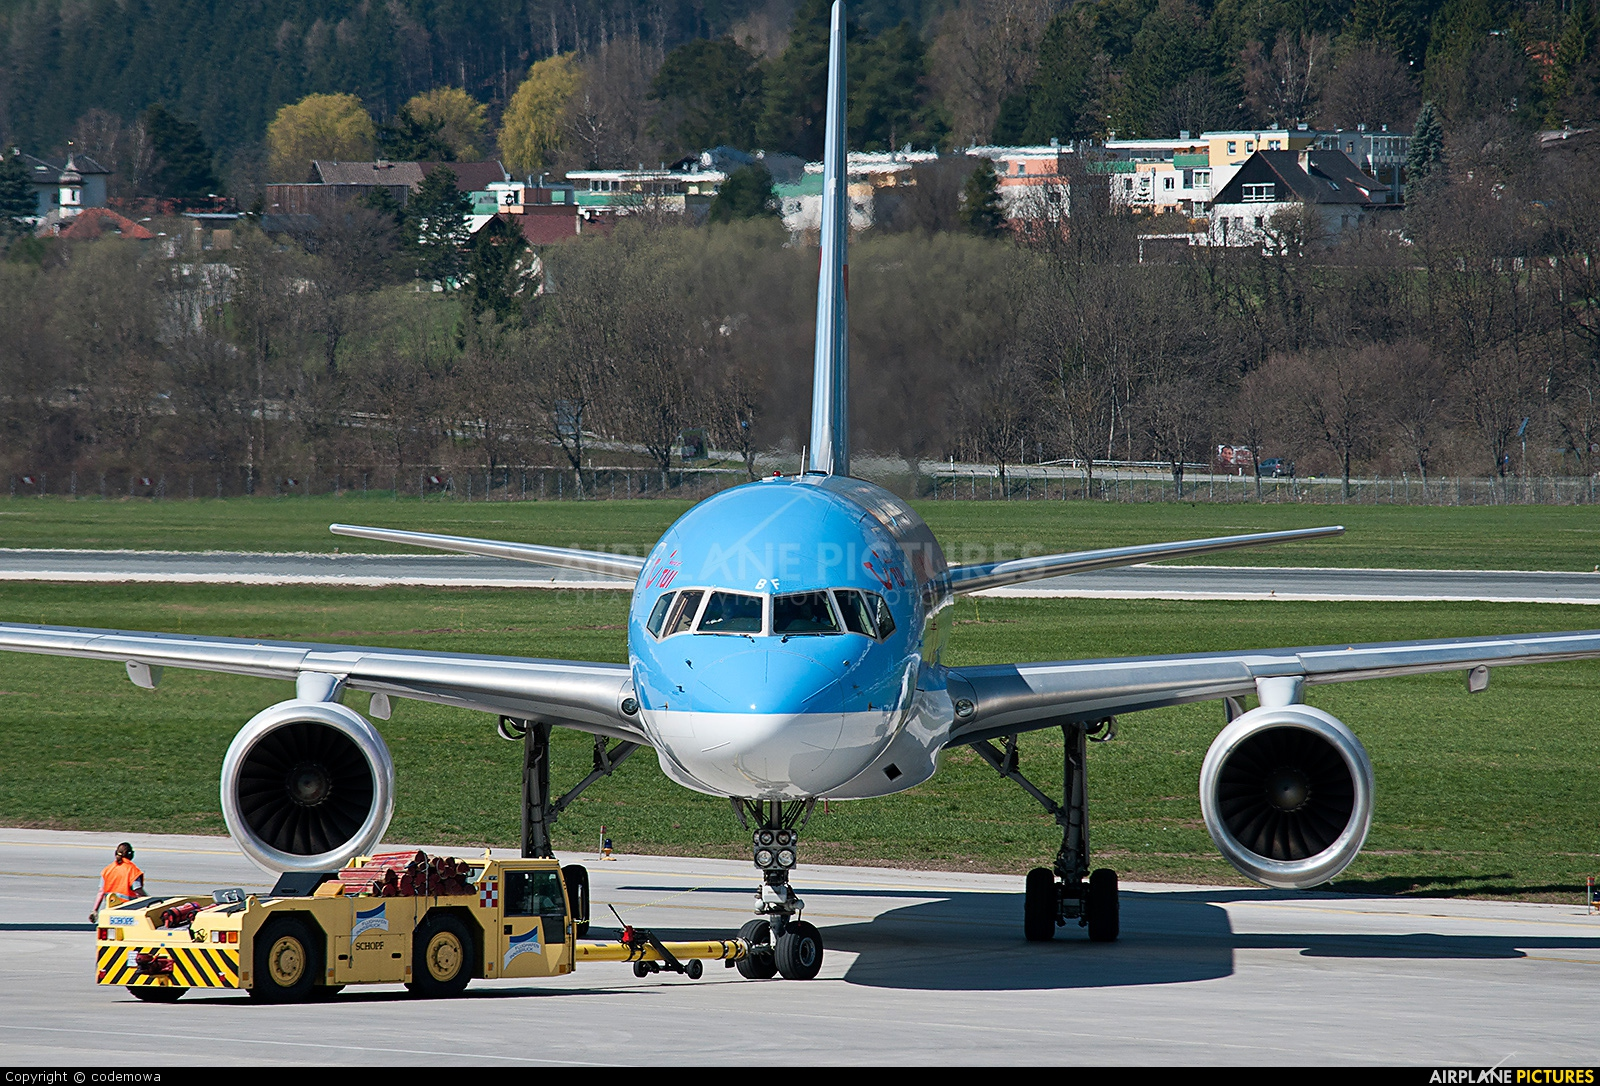 Thomson/Thomsonfly G-OOBF aircraft at Innsbruck